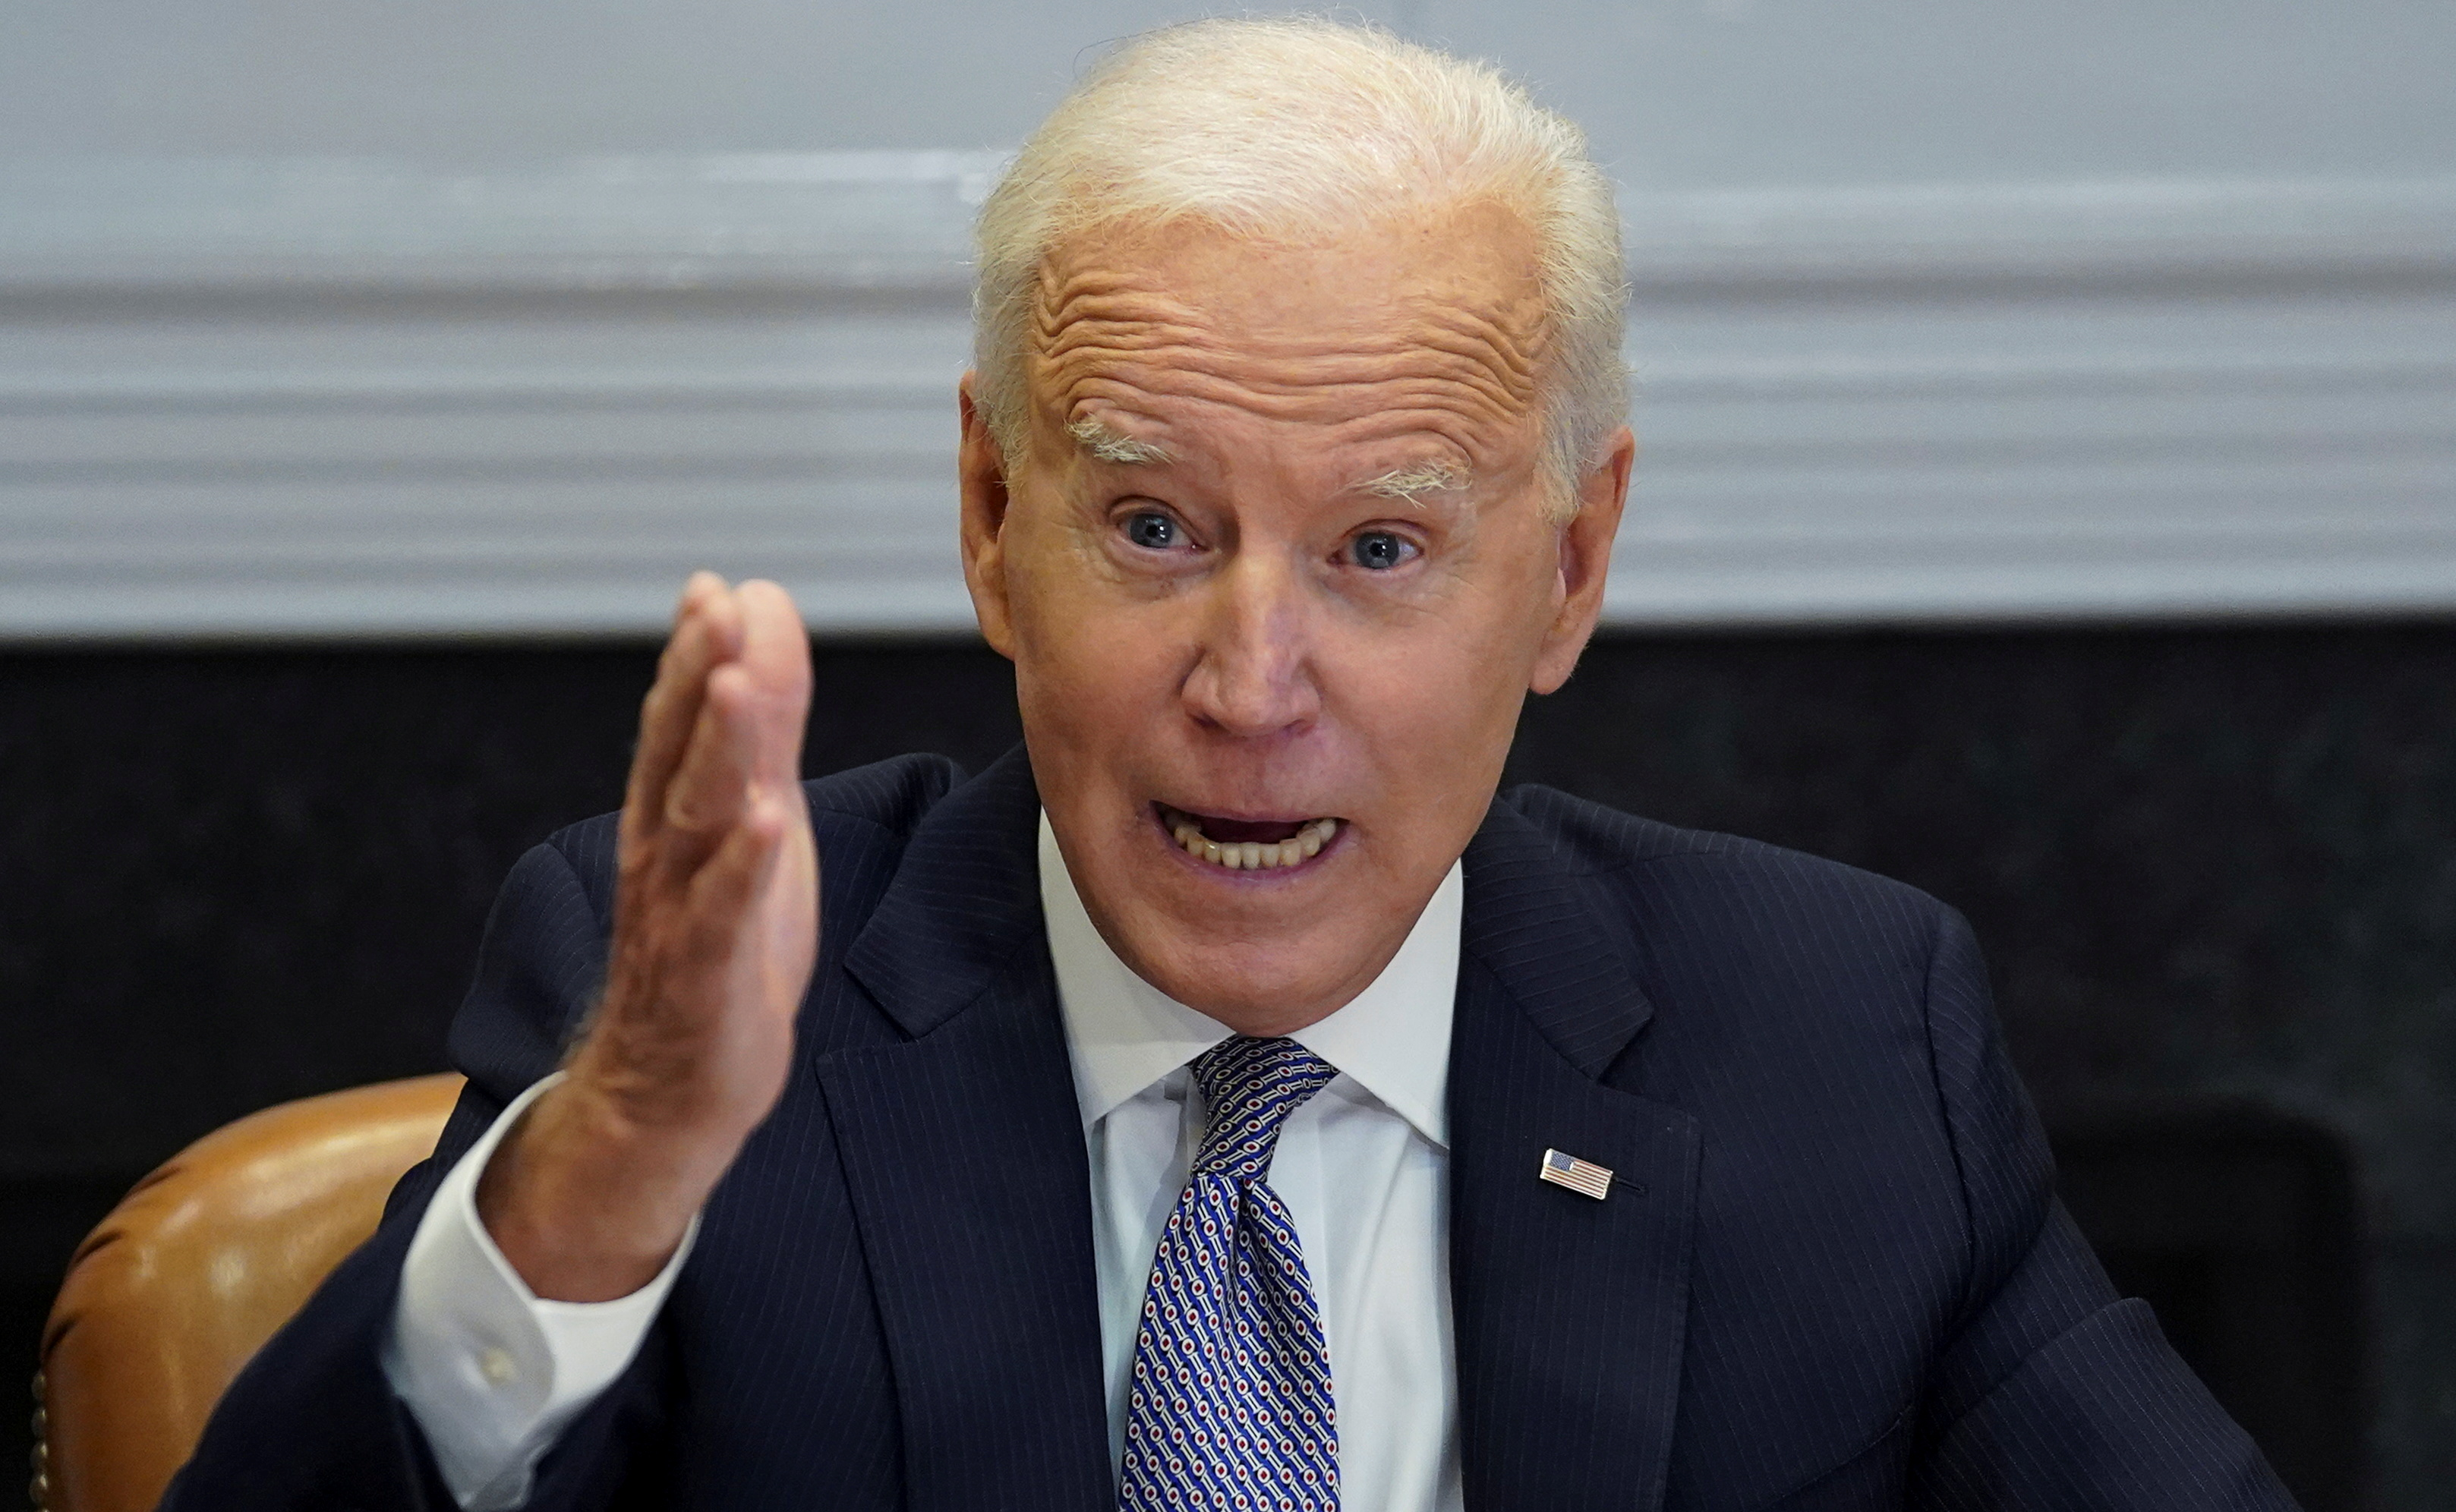 U.S. President Joe Biden speaks as he participates in the virtual CEO Summit on Semiconductor and Supply Chain Resilience from the Roosevelt Room at the White House in Washington, U.S., April 12, 2021. REUTERS/Kevin Lamarque/File Photo